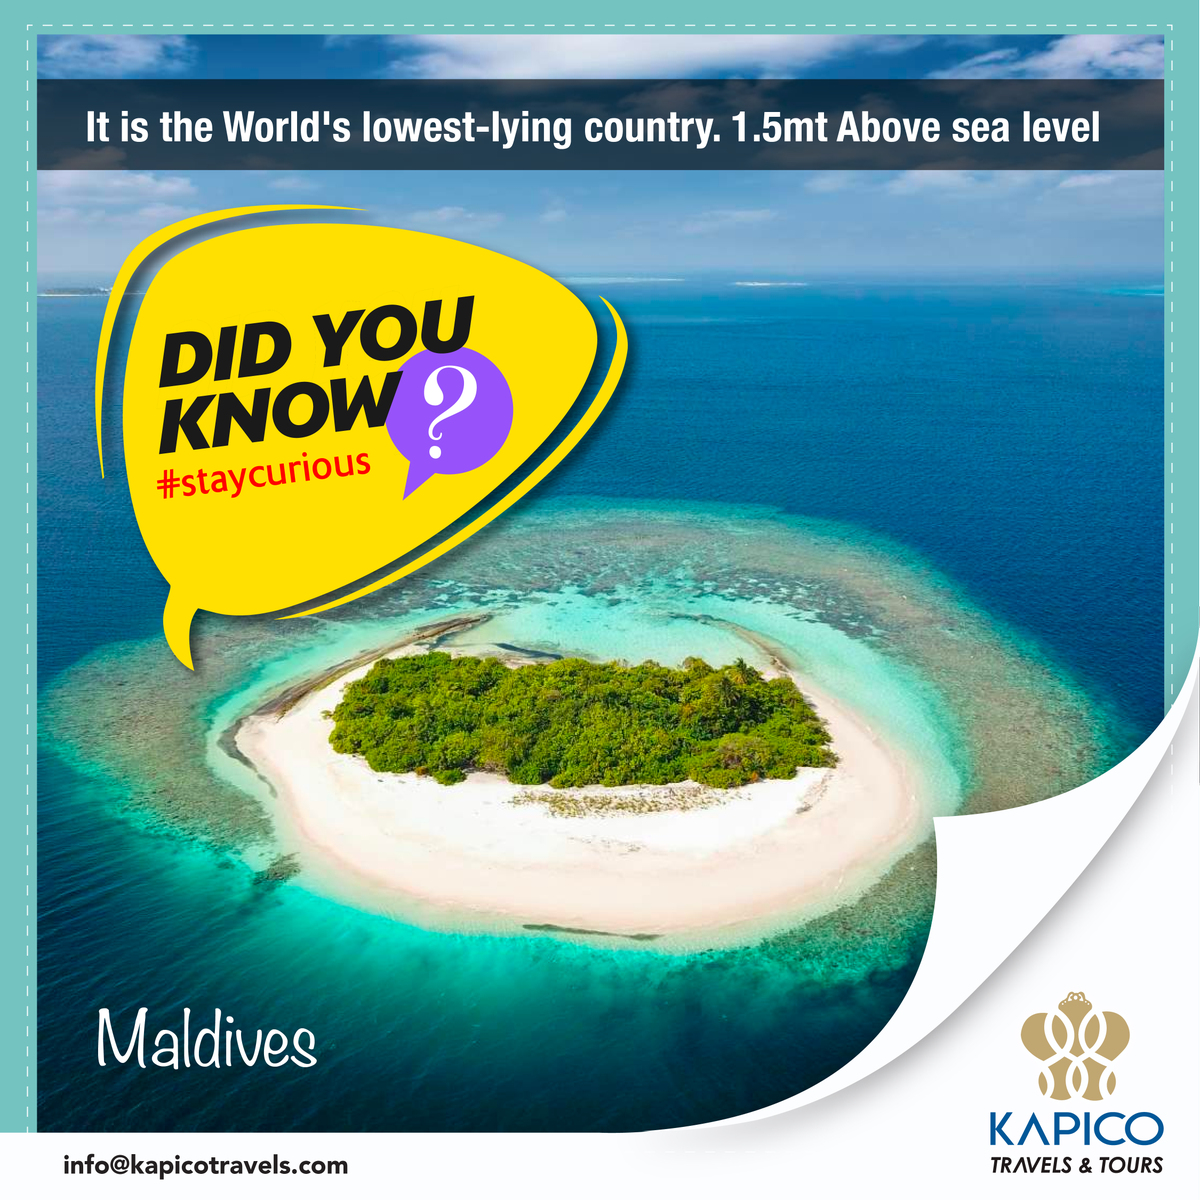 The #Maldives owns the title of the lowest #country in the world with an average of only 1.5 meters above sea level. The Maldives is now open to all tourists with safety measures.  #kapico #kapicotravels #tourism #maldivestourism  #travelagency #travels #travelfacts #staycurious https://t.co/7h9L5zk68N